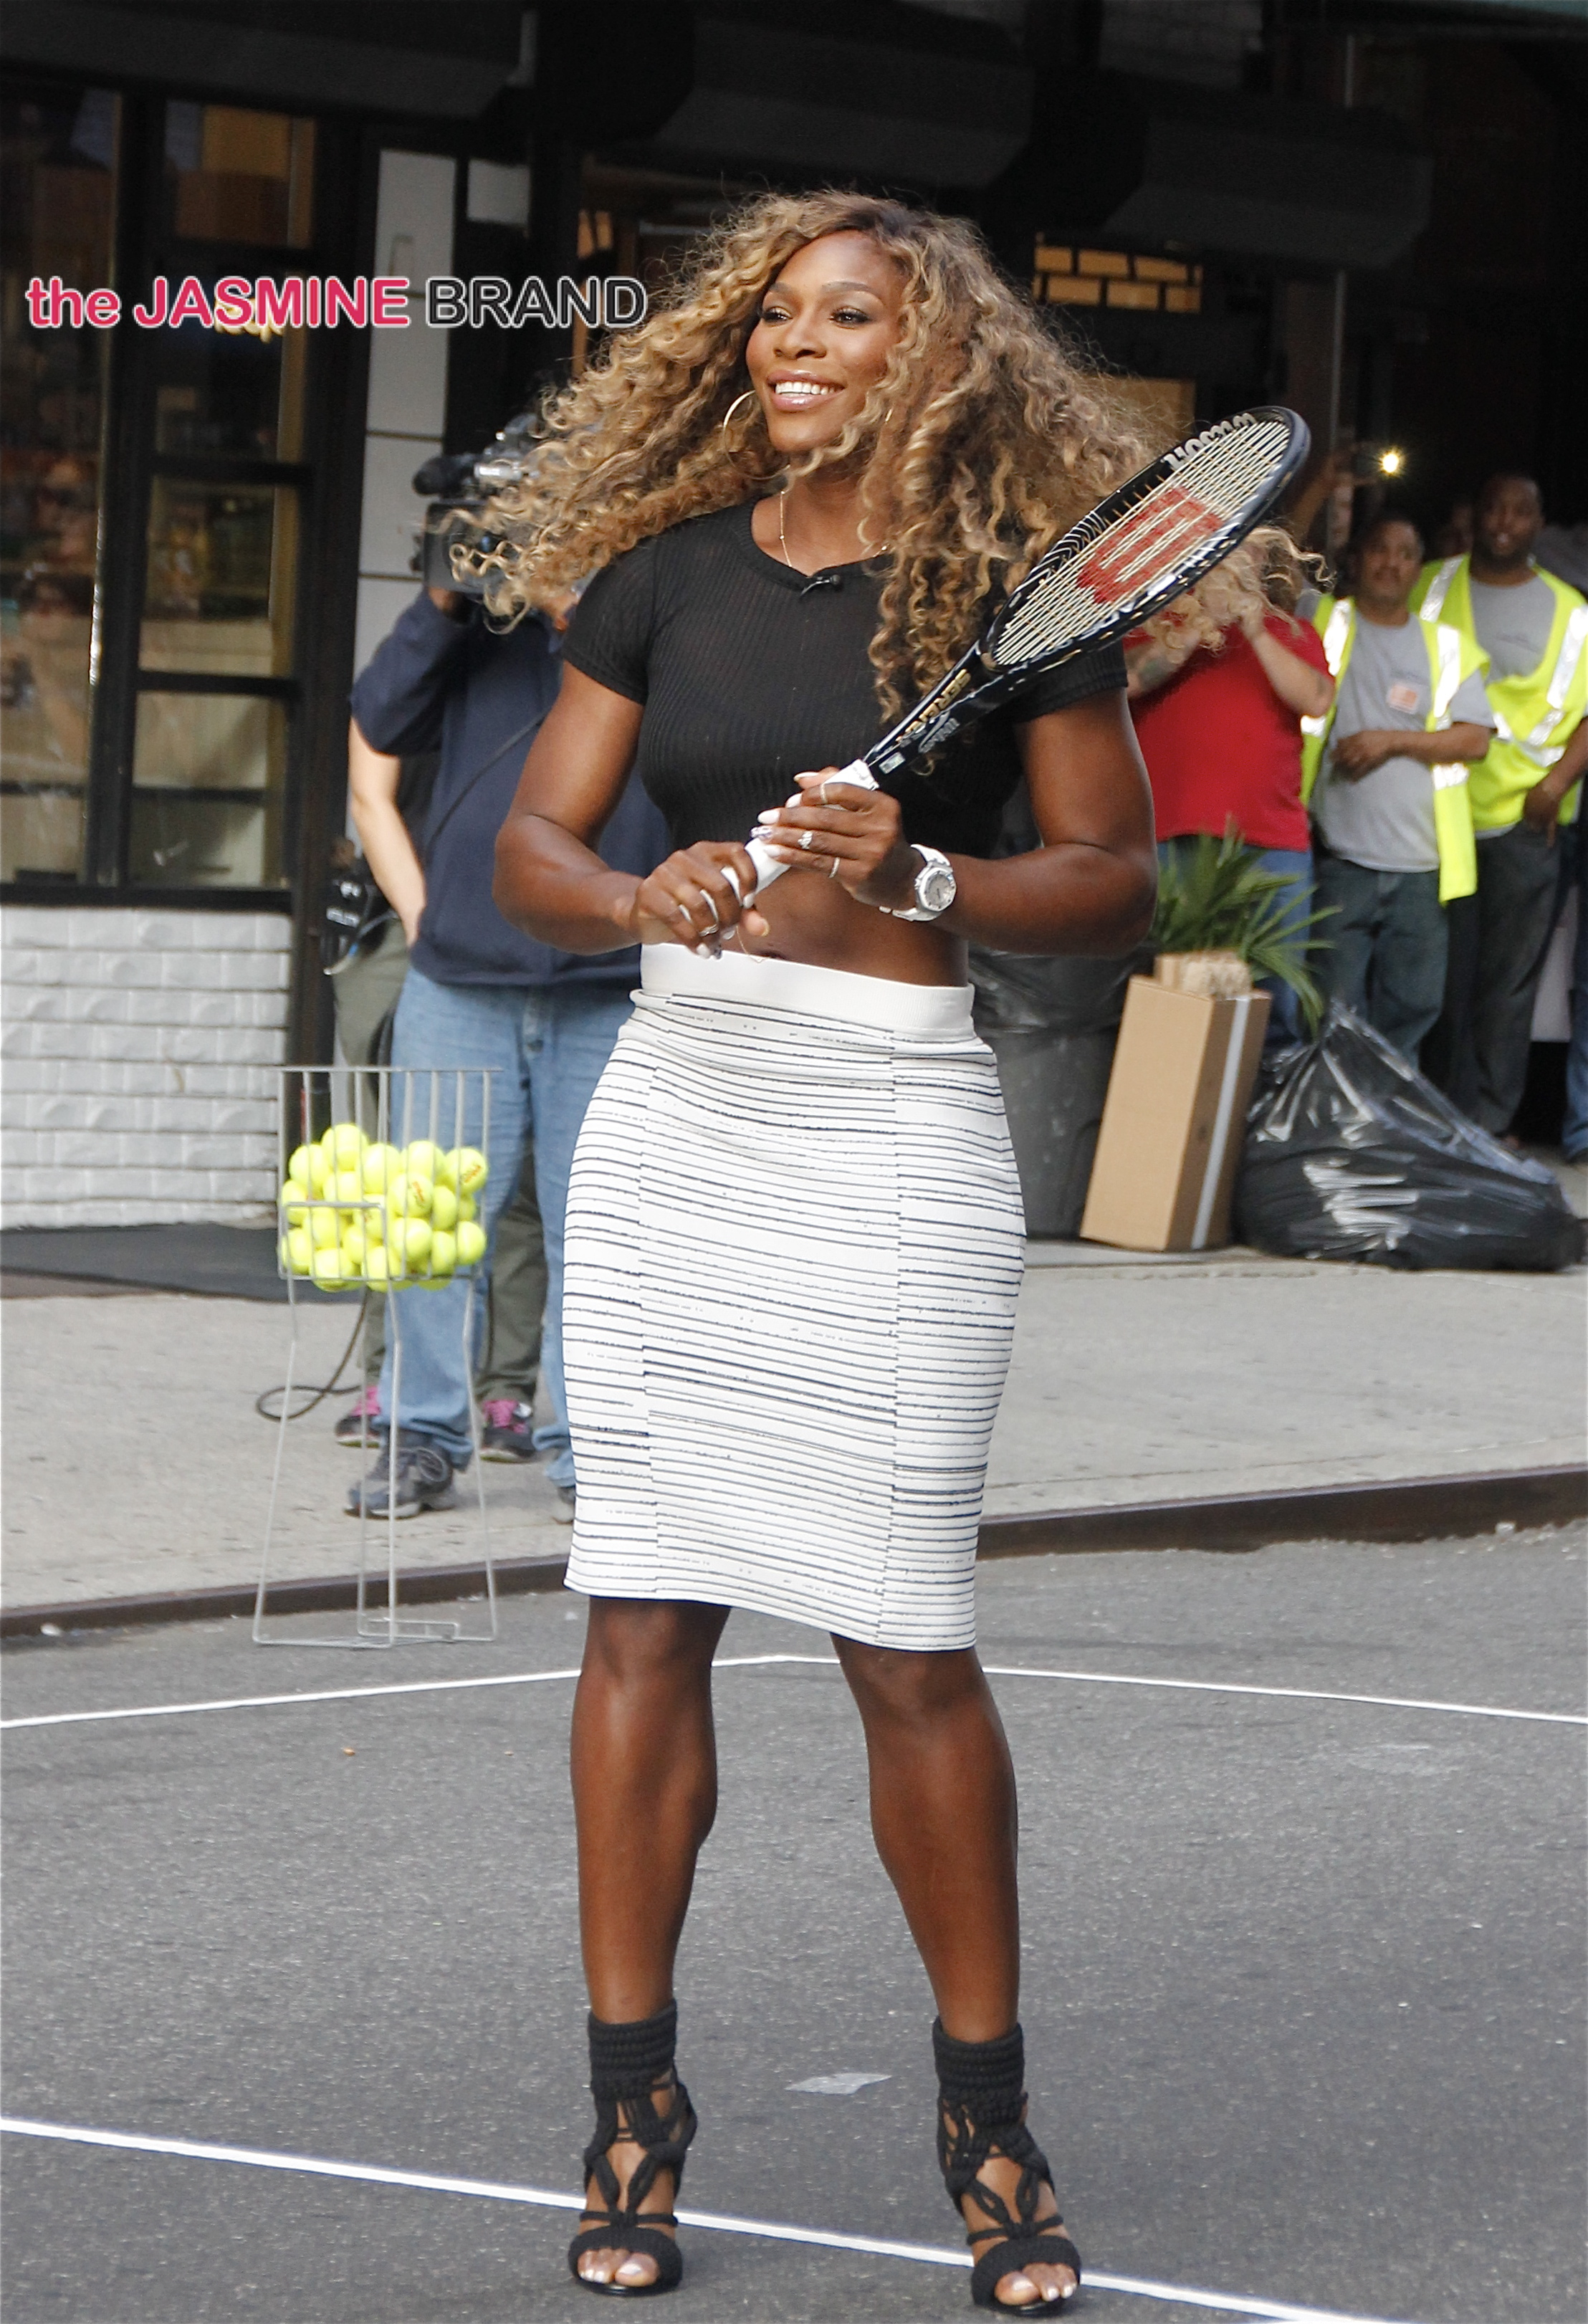 Wearing high heels and a curve-hugging skirt, Serena Williams plays tennis with David Letterman outside of the 'Late Show with David Letterman' studios in NYC